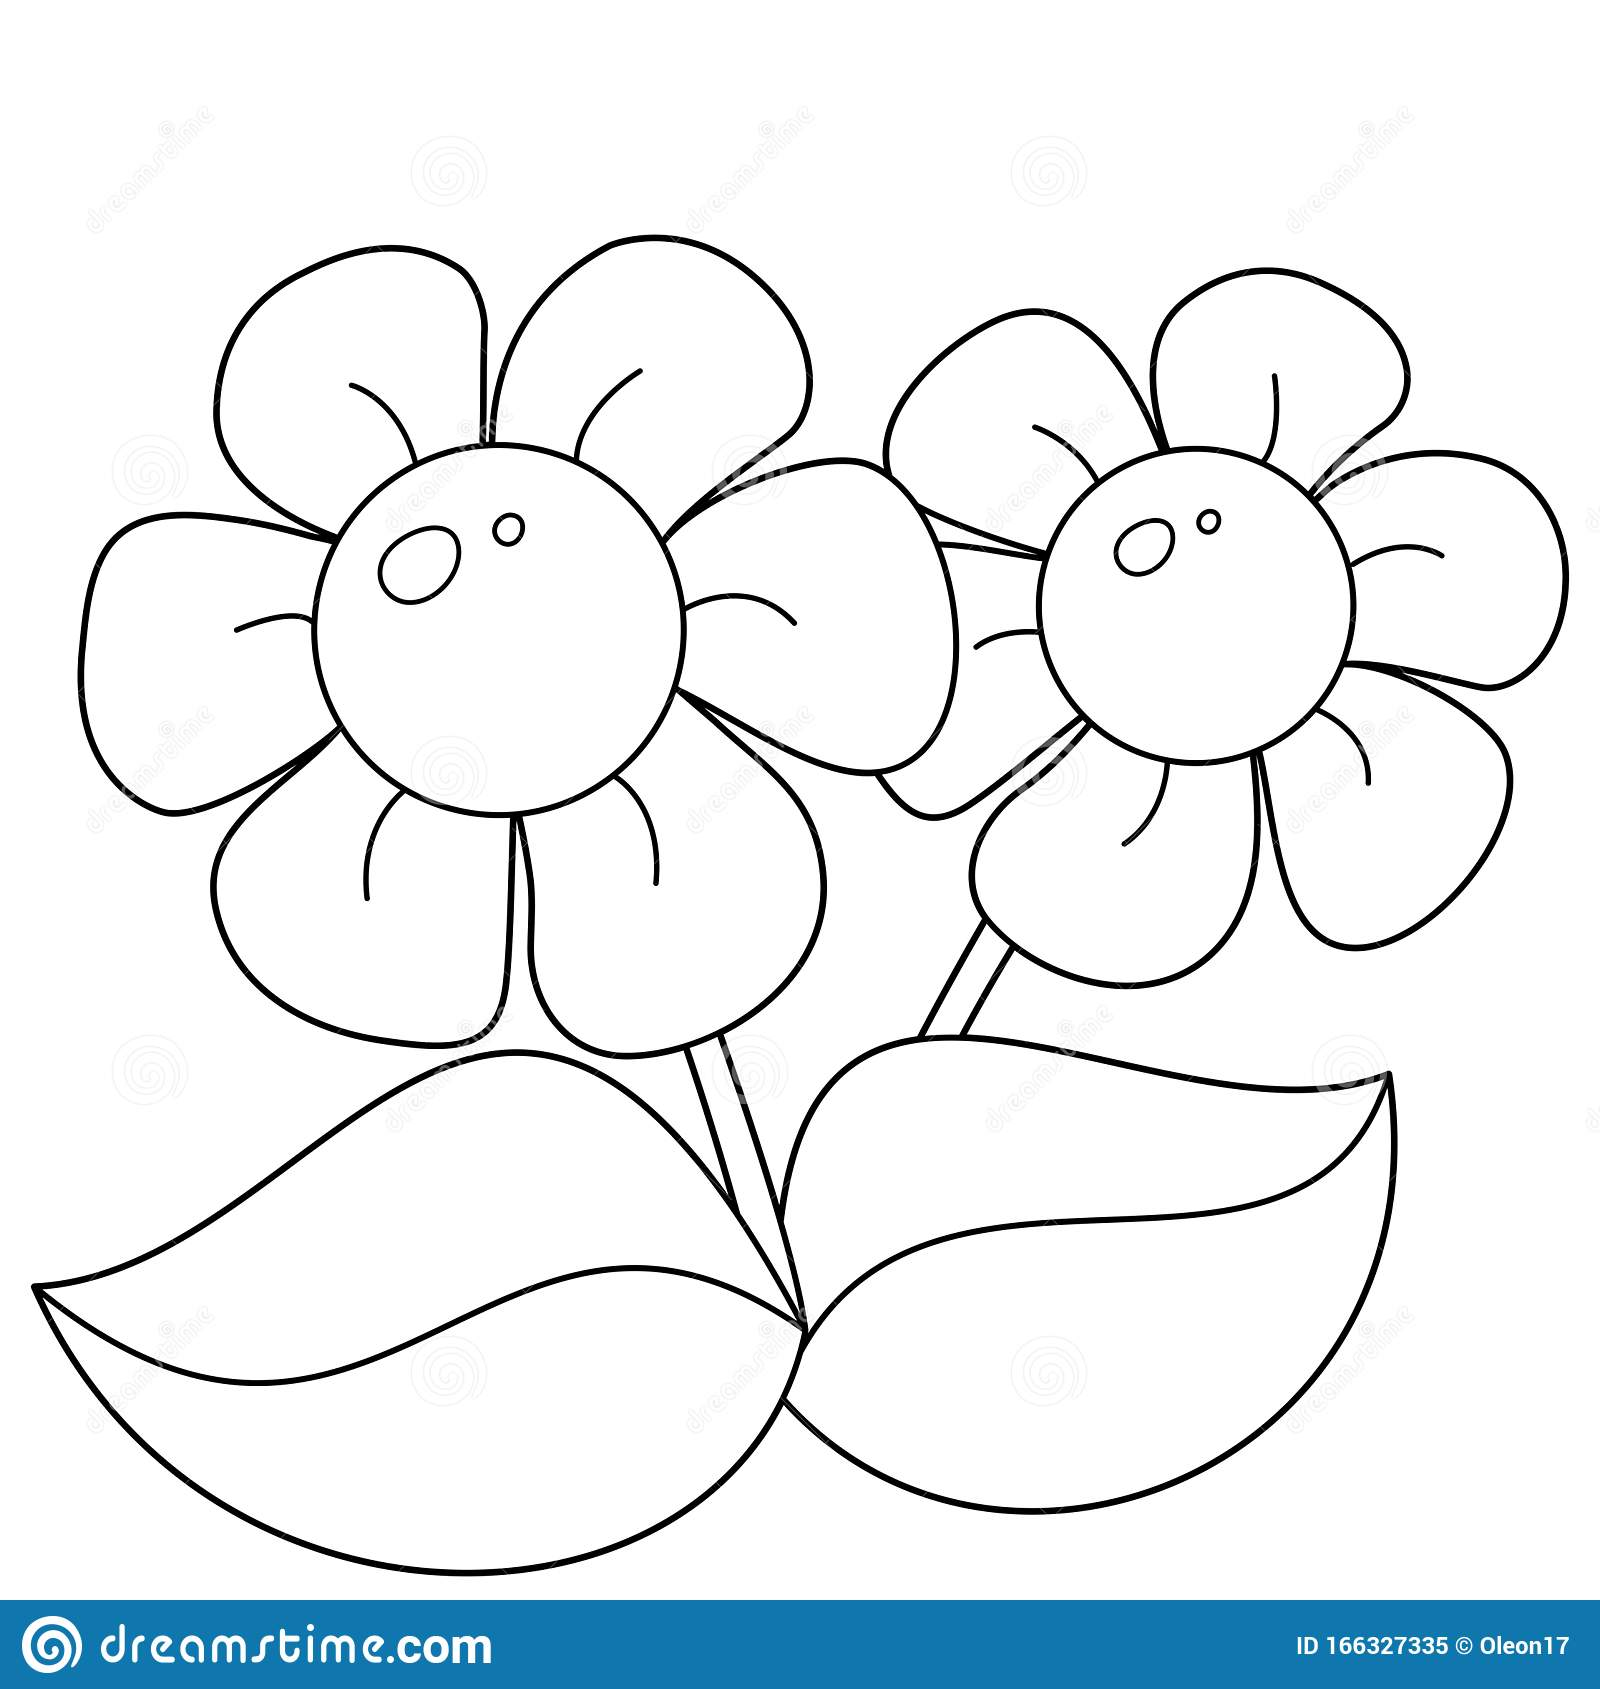 Coloring Page Outline Of Cartoon Flowers Coloring Book For Kids Stock Vector Illustration Of Child Drawing 166327335